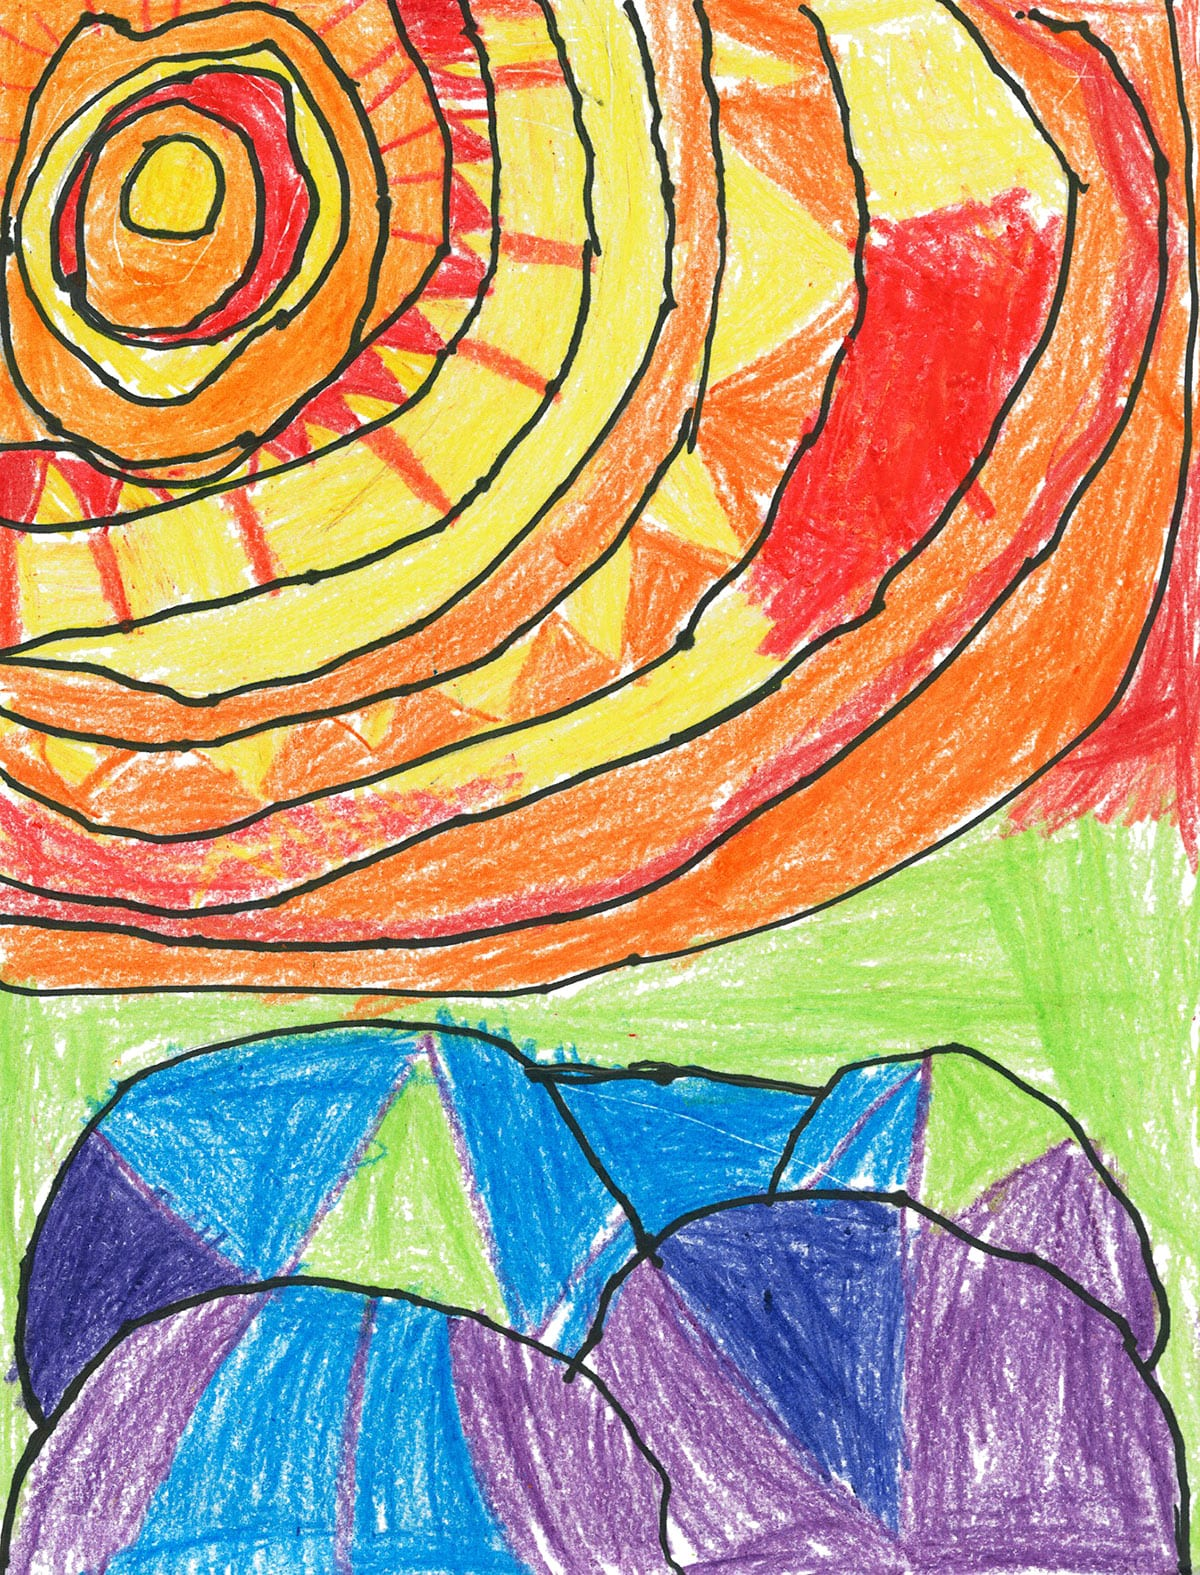 Ted Harrison Inspired Abstract Sunset Artwork by Kyra at Caroline Street Elementary